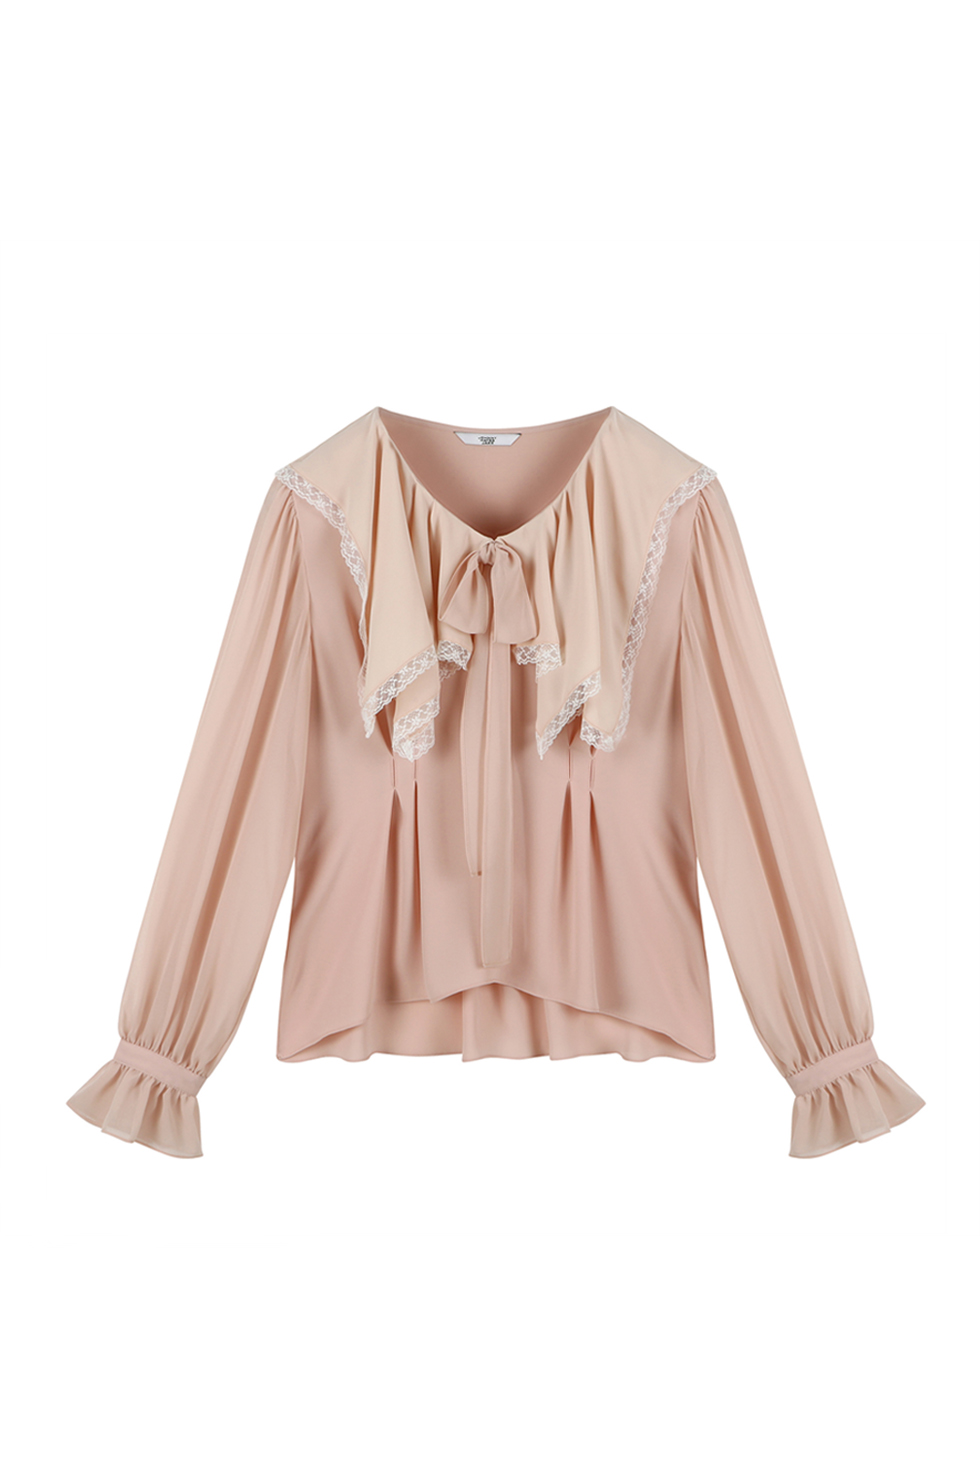 SQUARED RUFFLE BLOUSE - PINK